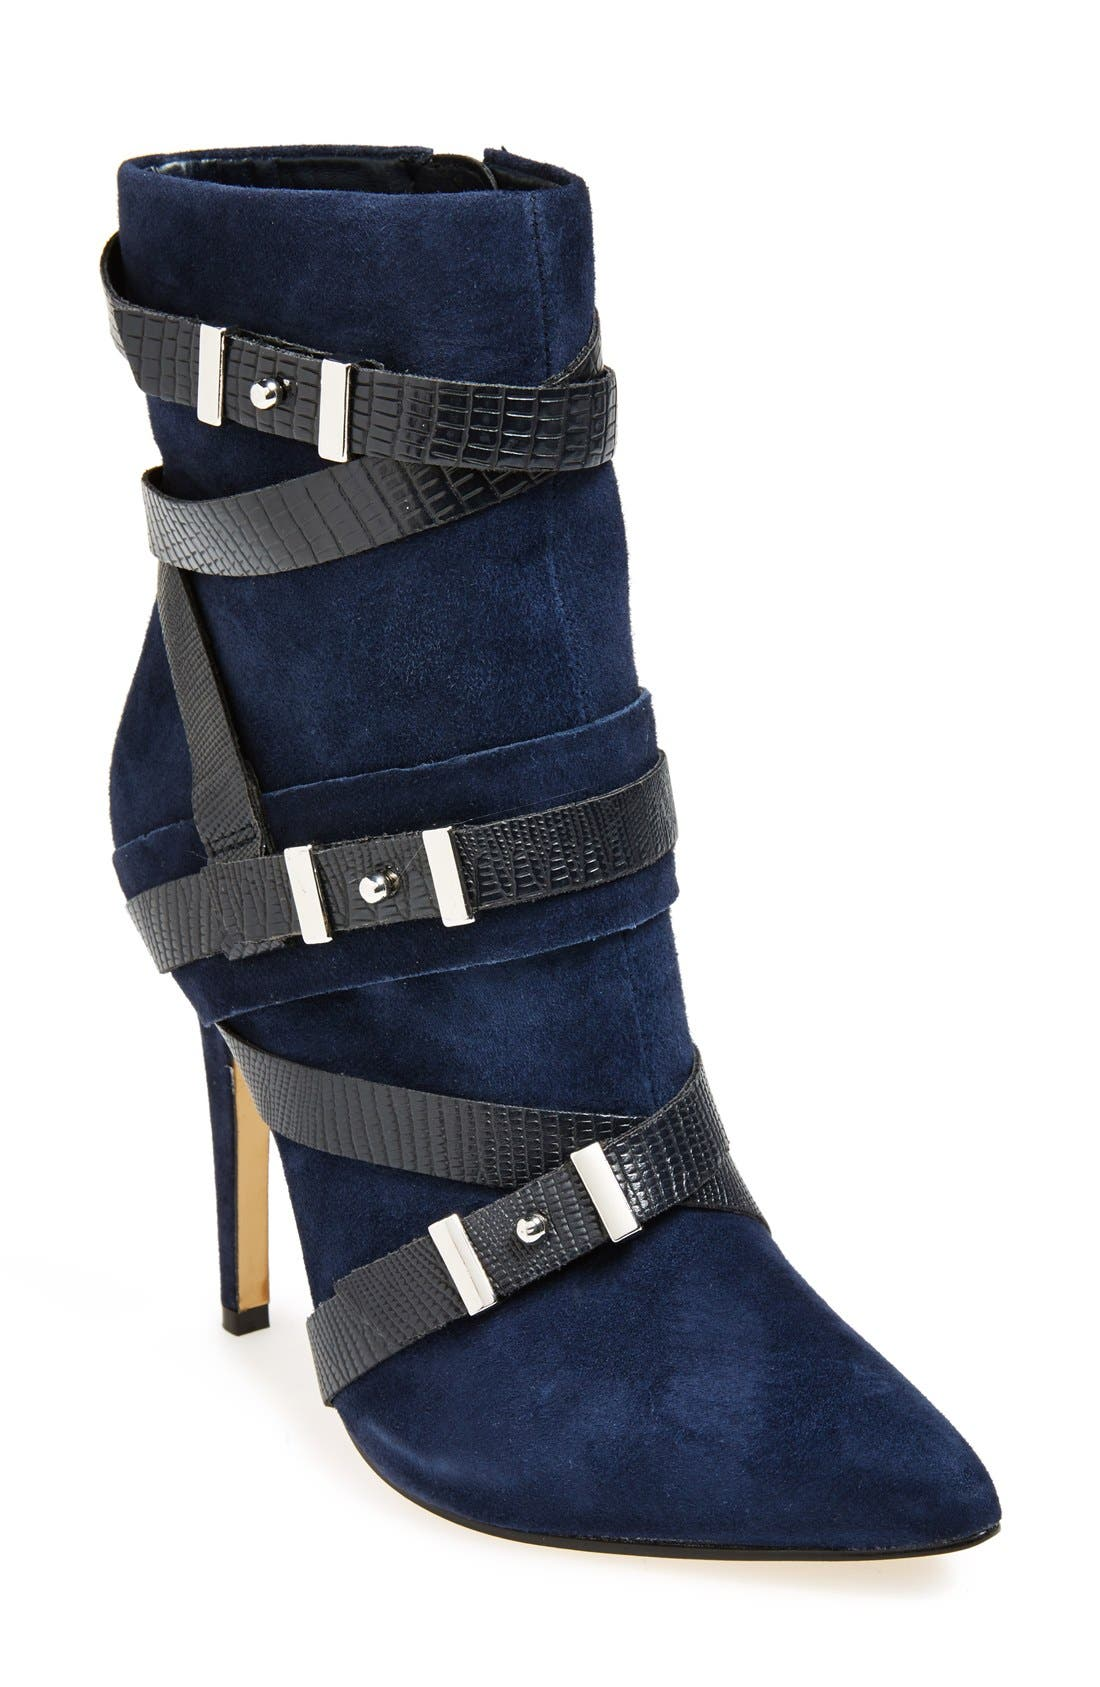 Main Image - GUESS 'Parley' Pointy Toe Bootie (Women)